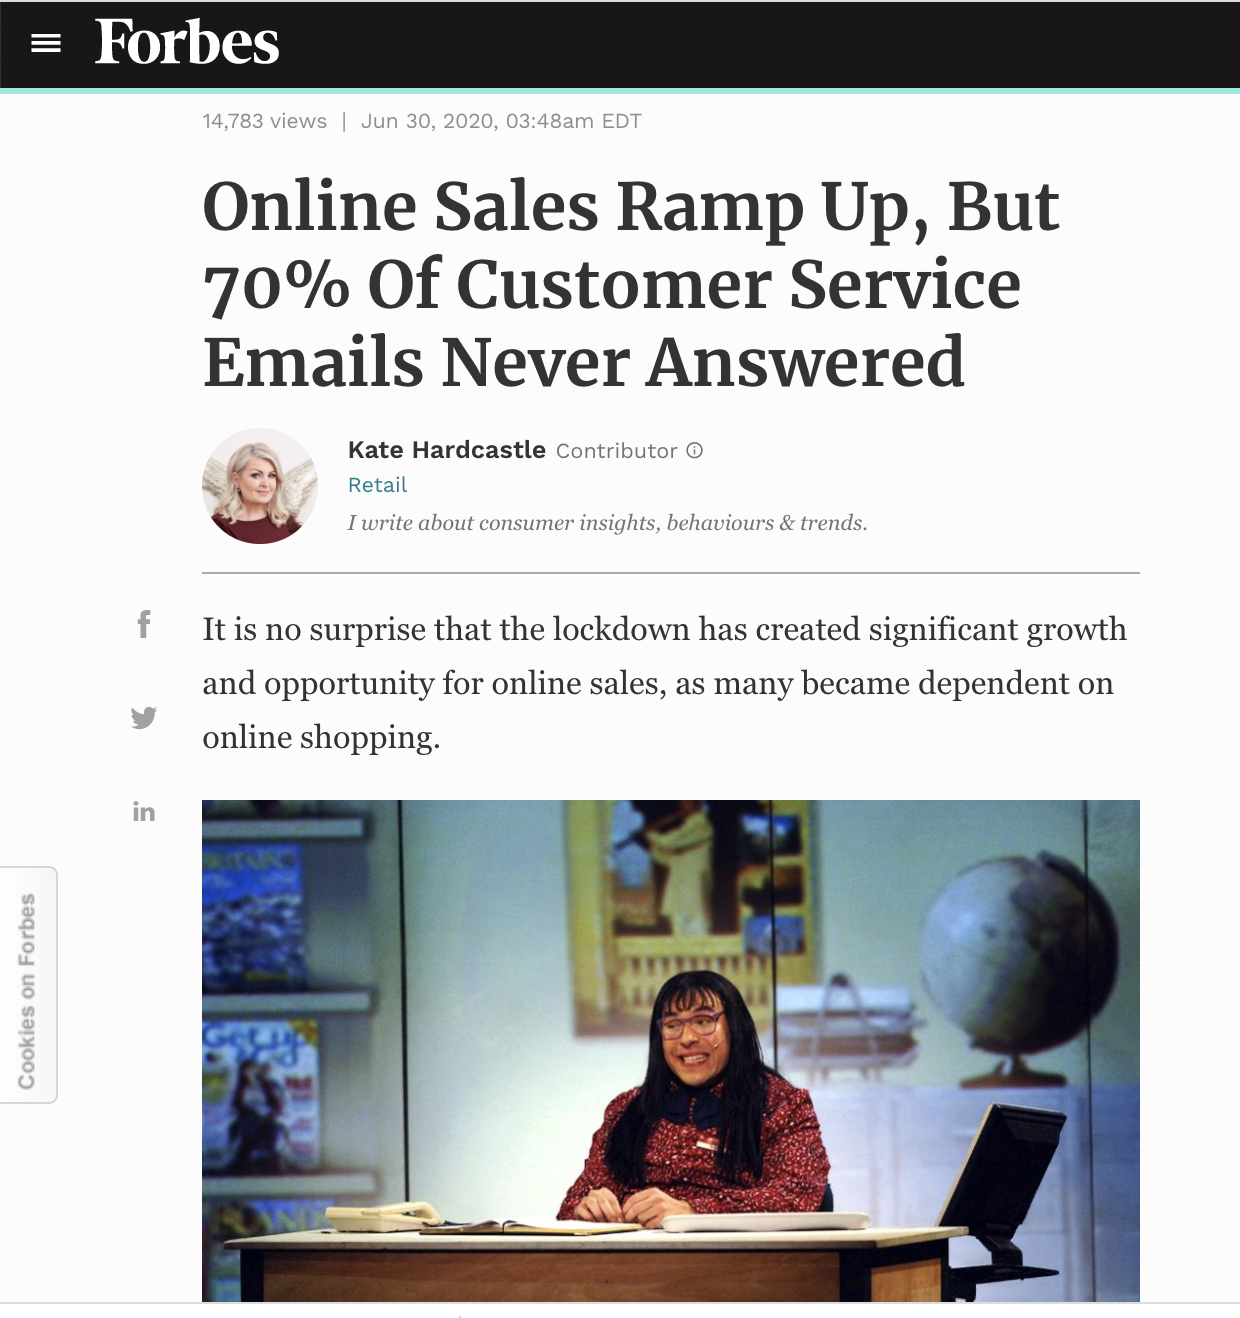 forbes customer service benchmark